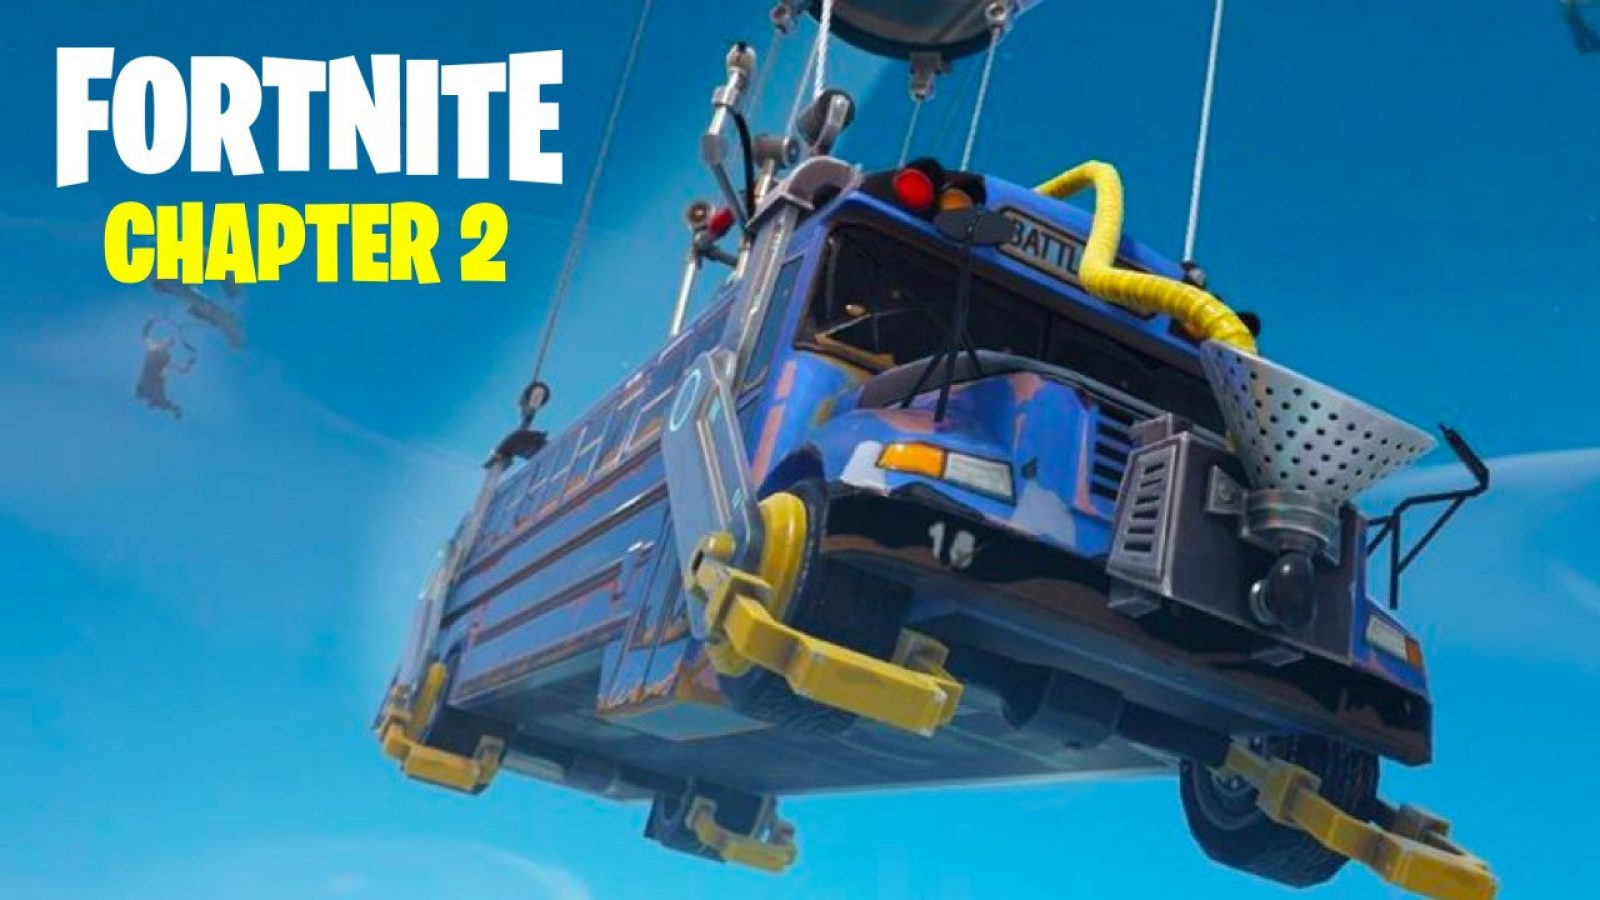 Fortnite Chapter 2 Leaks and New Features